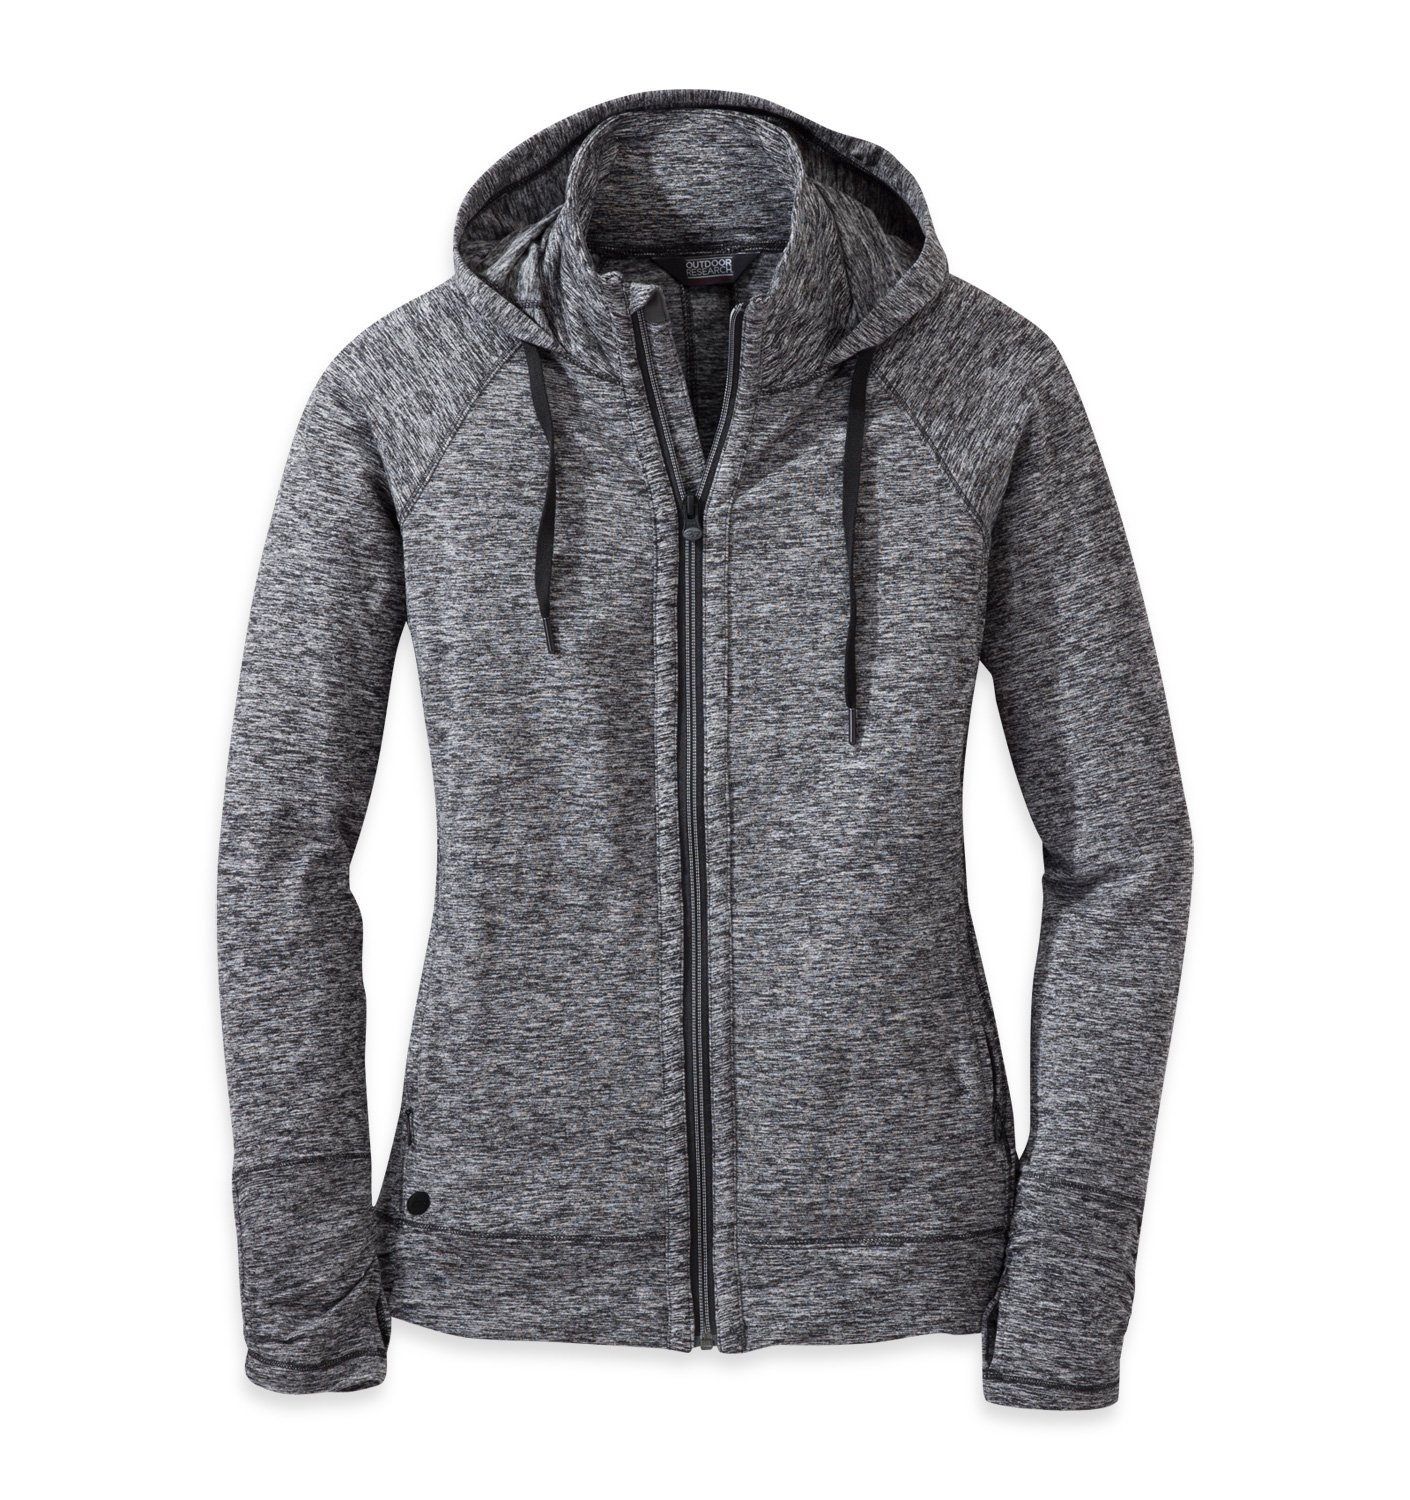 Outdoor Research  Women's Melody Hoody, Black, XL